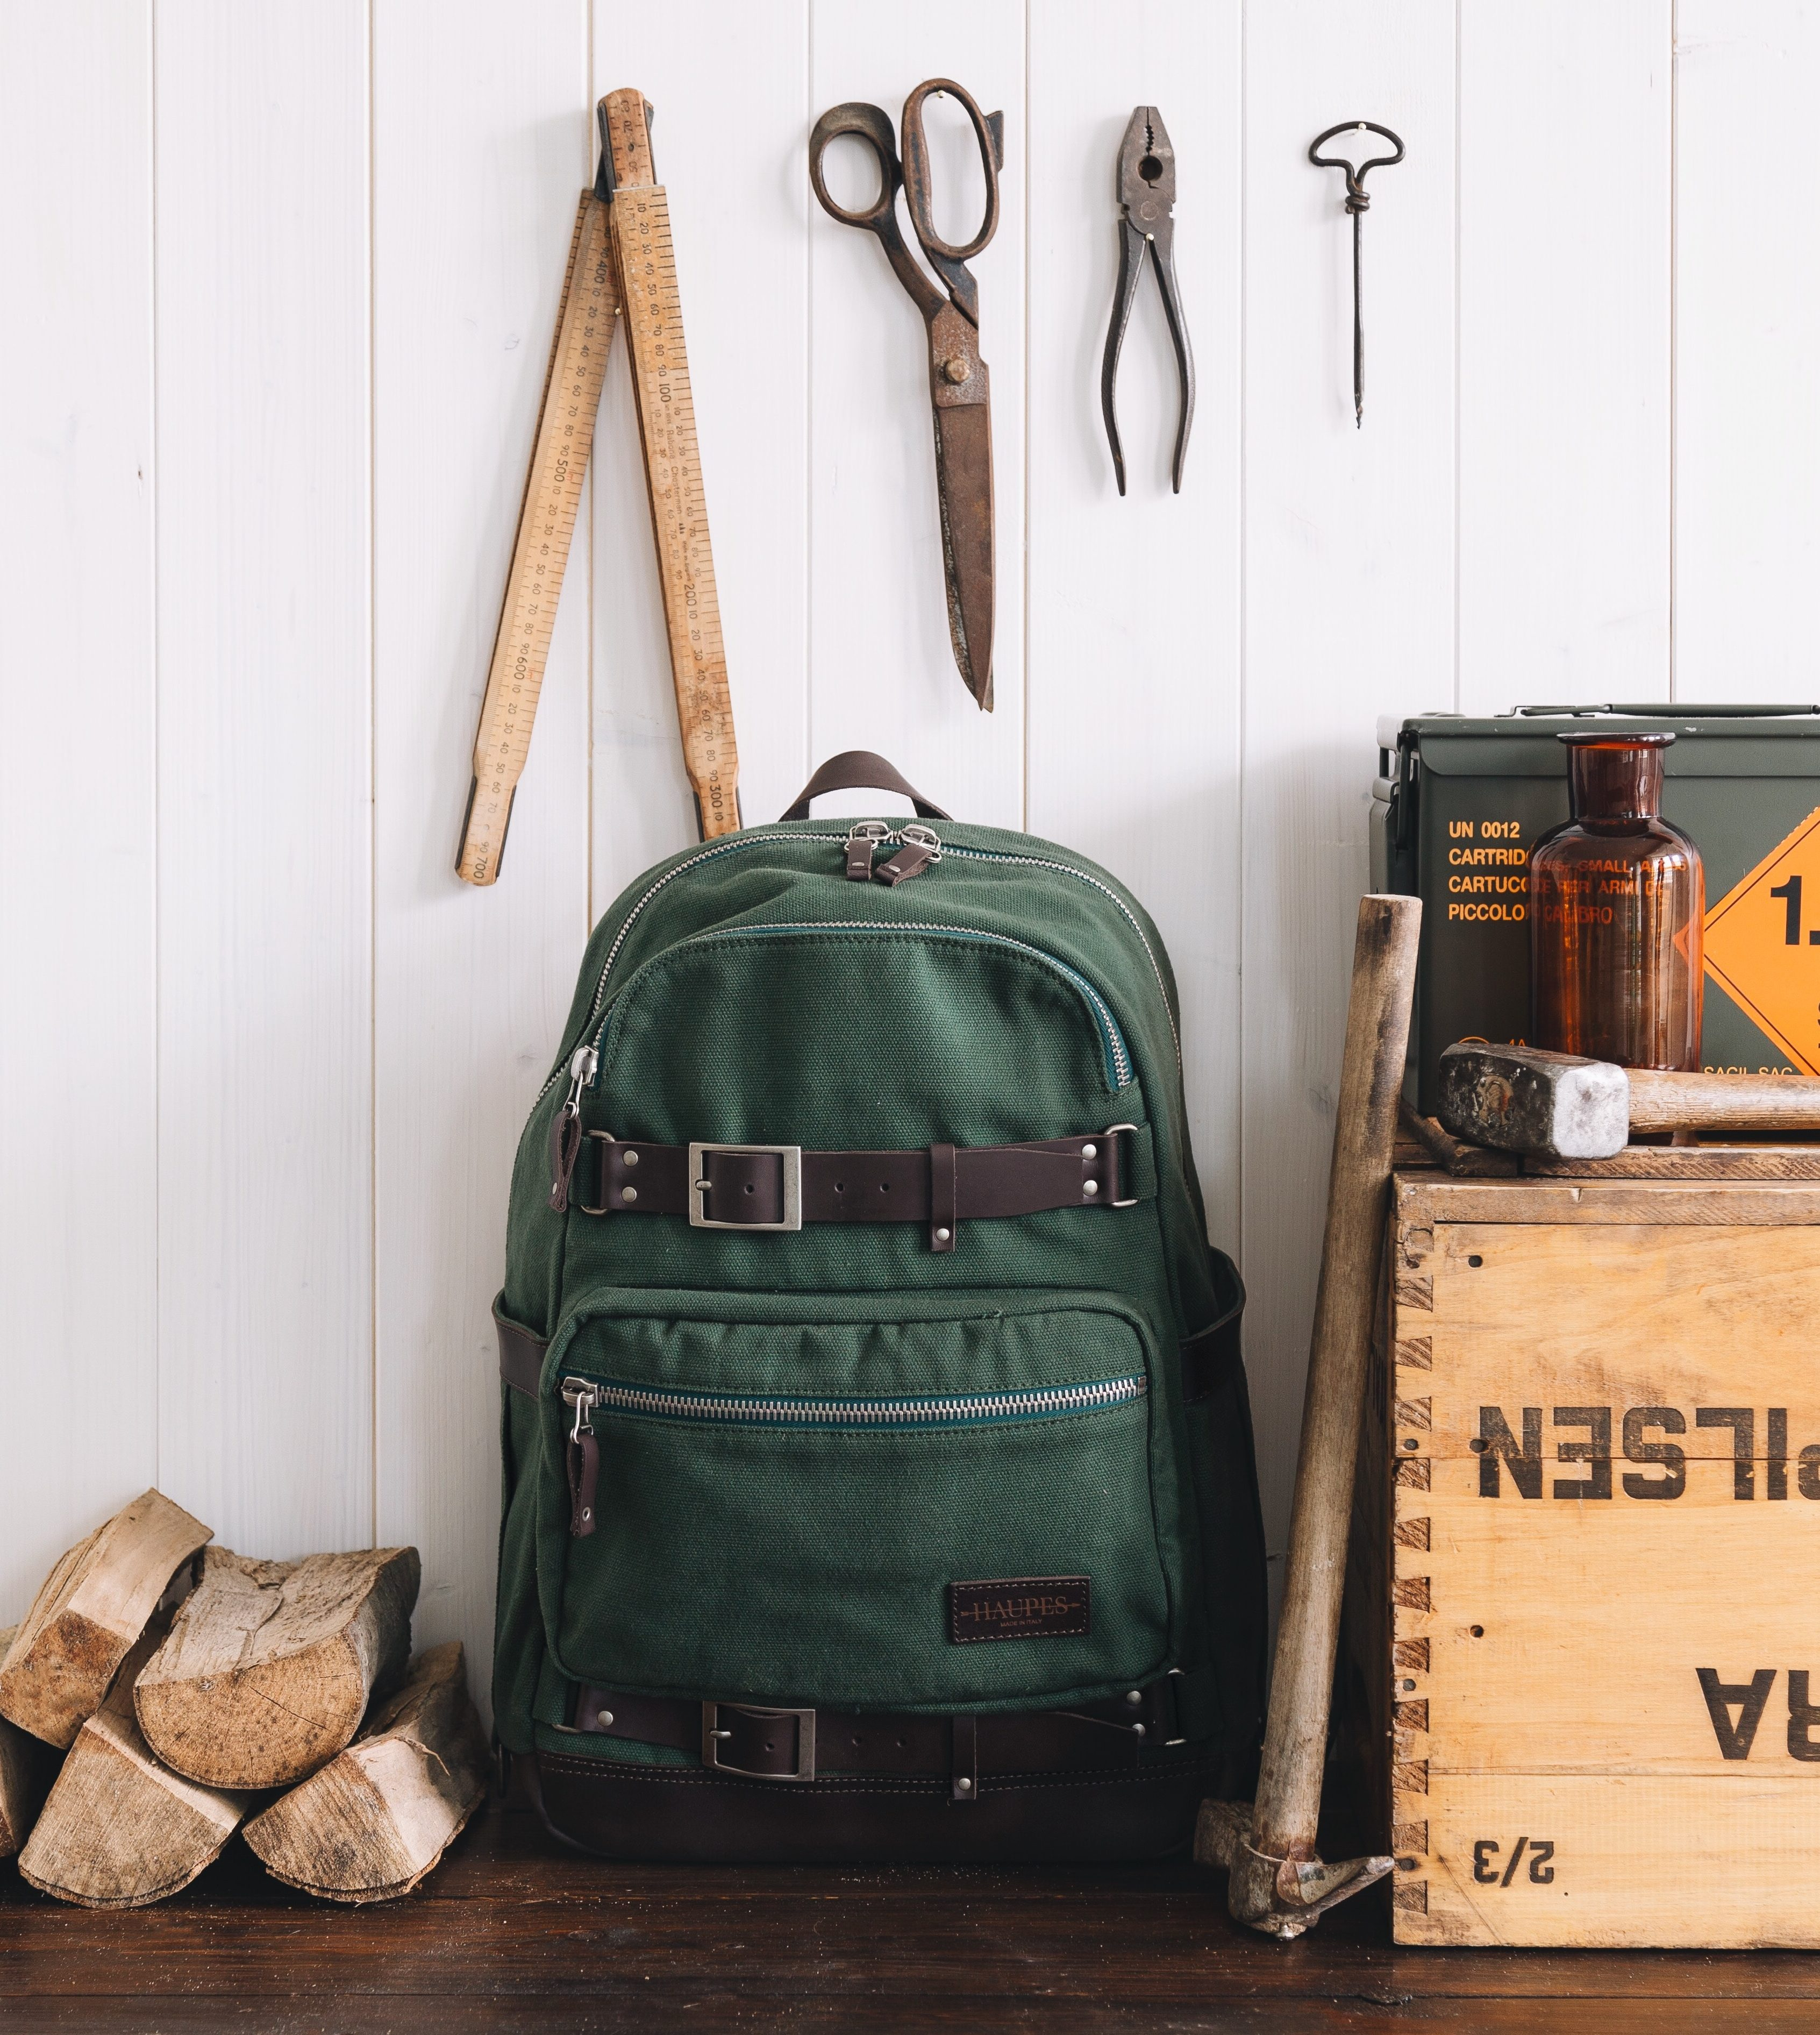 Questions to ask when choosing a backpack